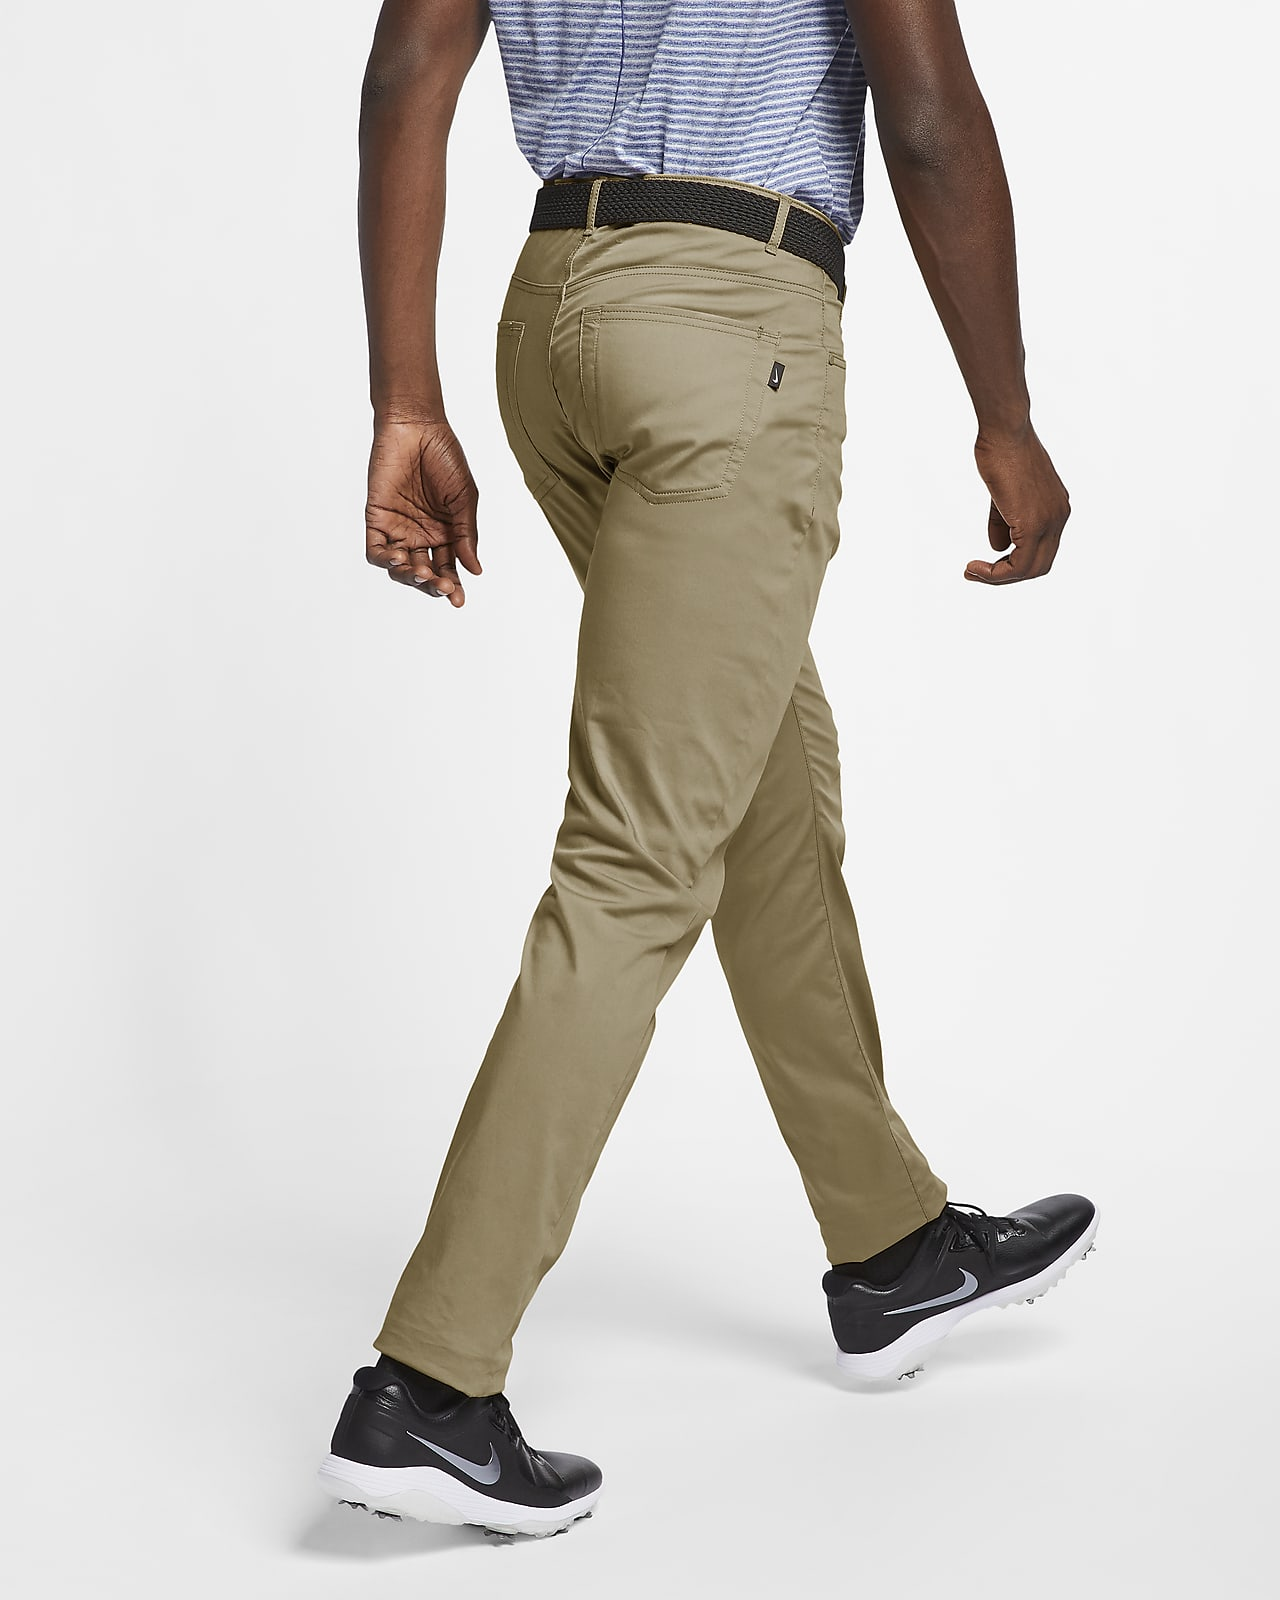 Malasanità Citazione abuso  Nike Flex Men's Slim Fit 5-Pocket Golf Pants. Nike.com